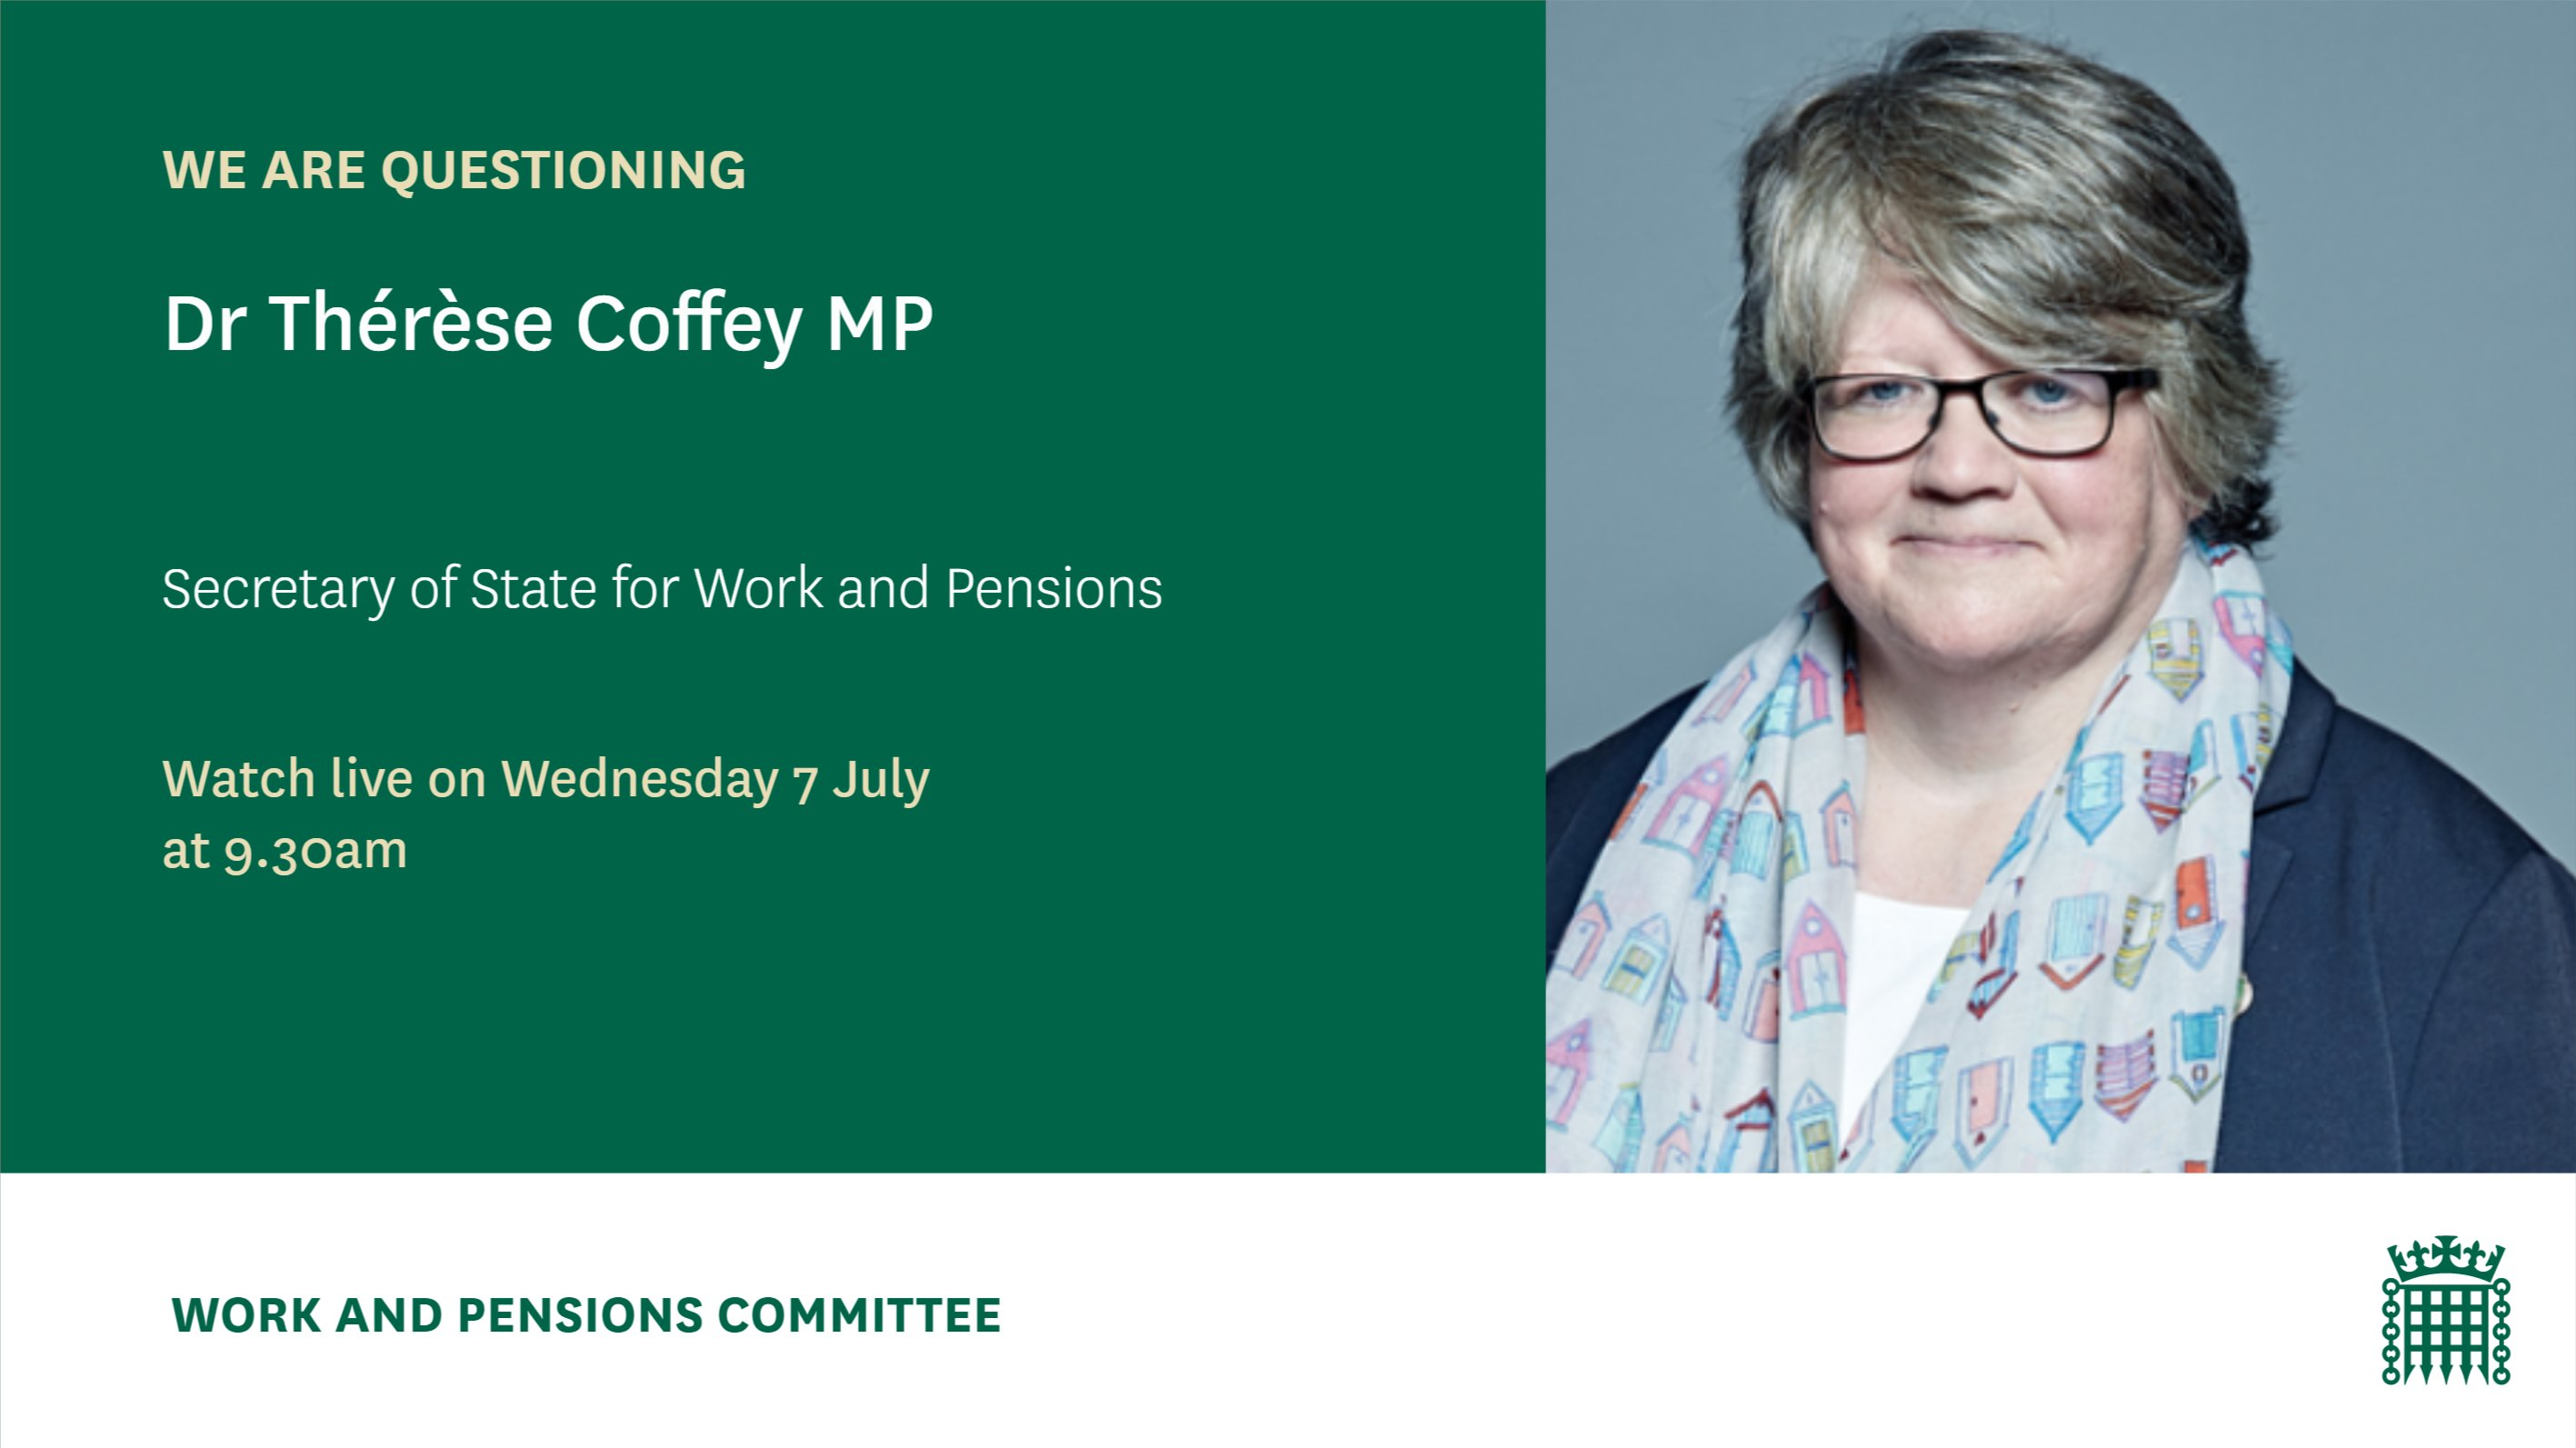 We are questioning Dr Thérèse Coffey MP Secretary of State for Work and Pensions Watch live on Wednesday 7 July at 9.30am